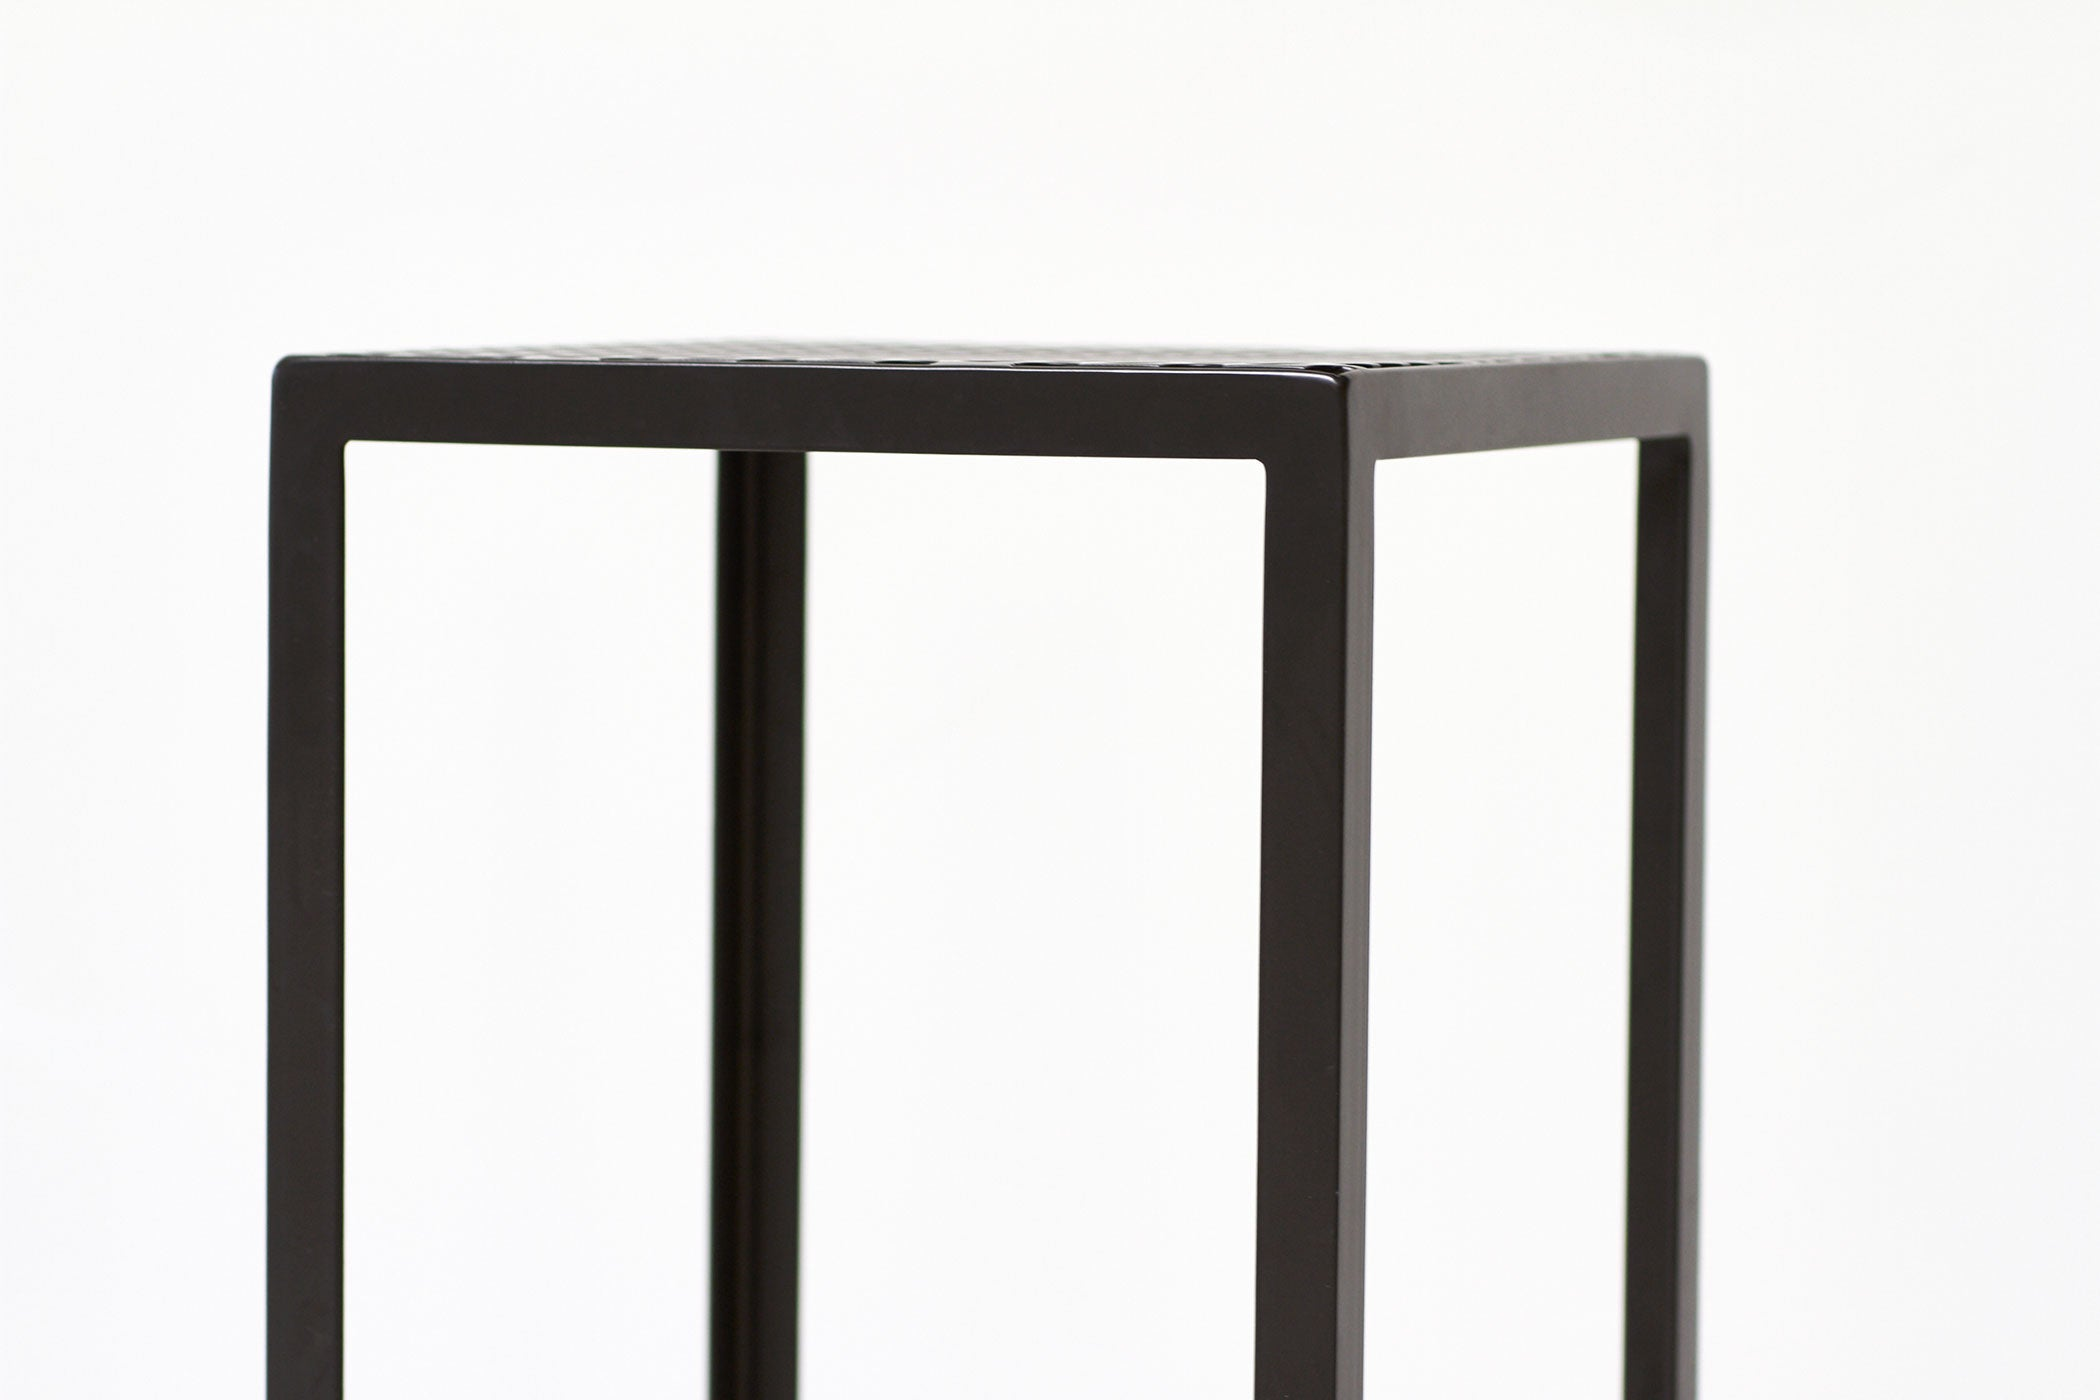 RAD Furniture's Perforated Drop Bar Stool - cropped